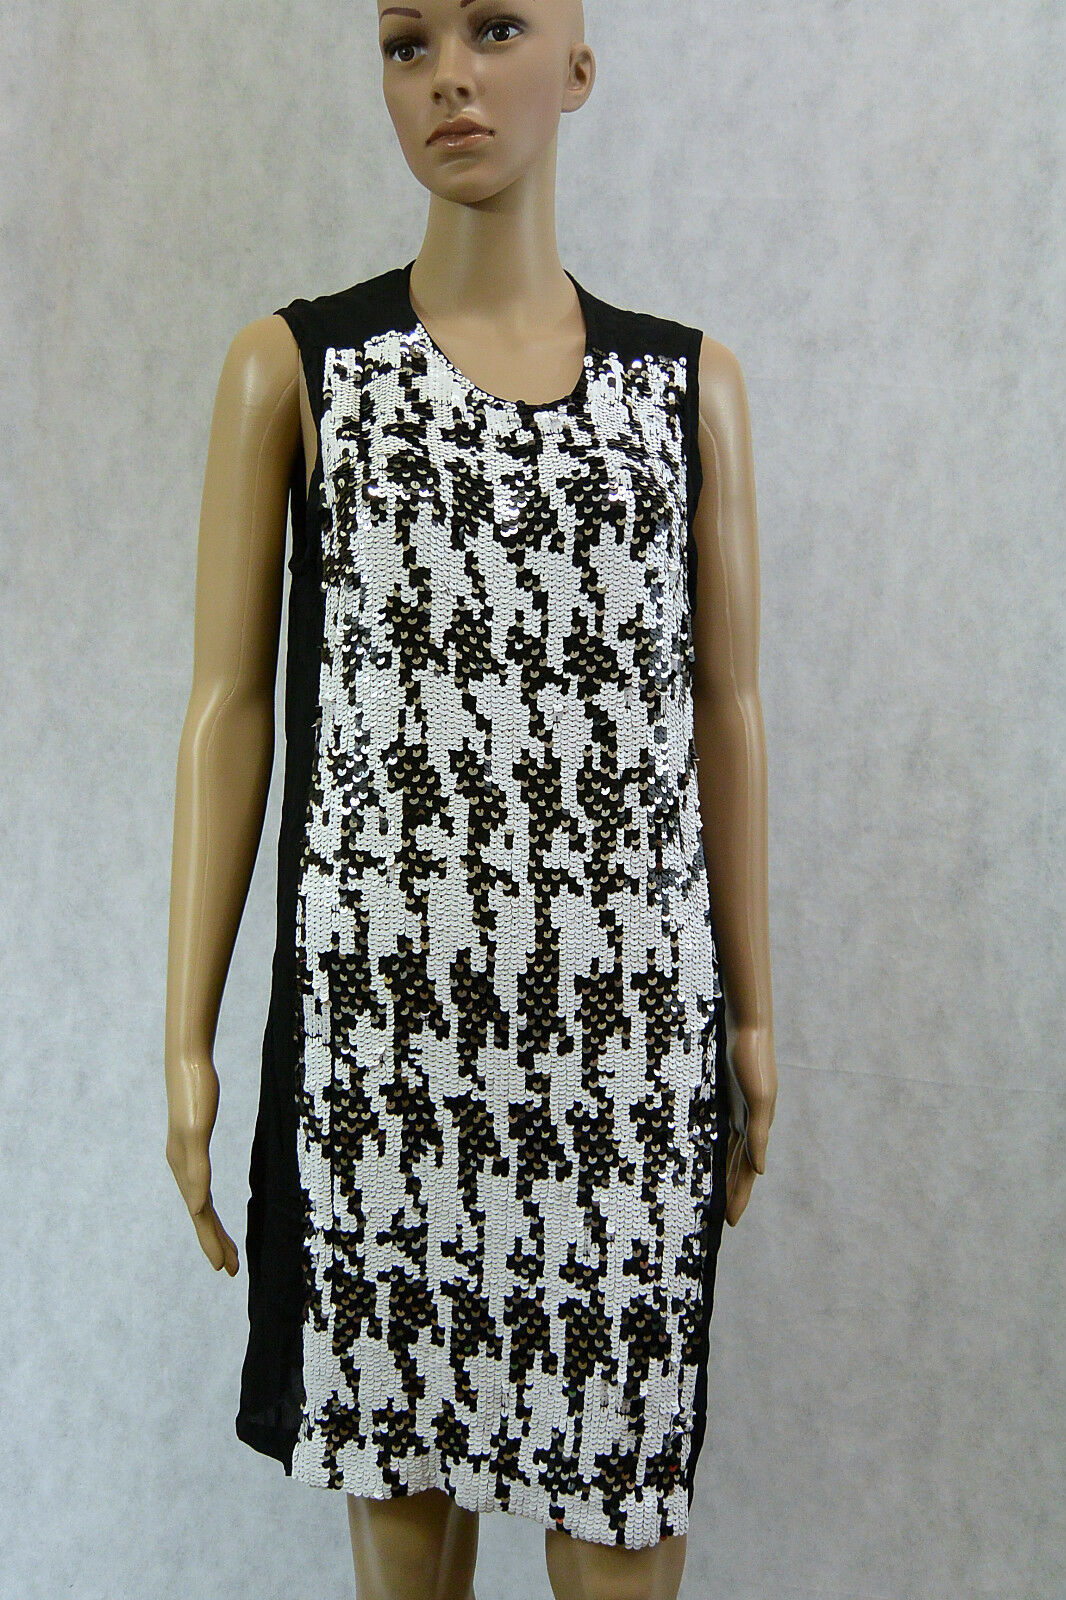 WITCHERY BNWT  250 Handmade Sequins Houndstooth Shift Dress 10 Evening M S